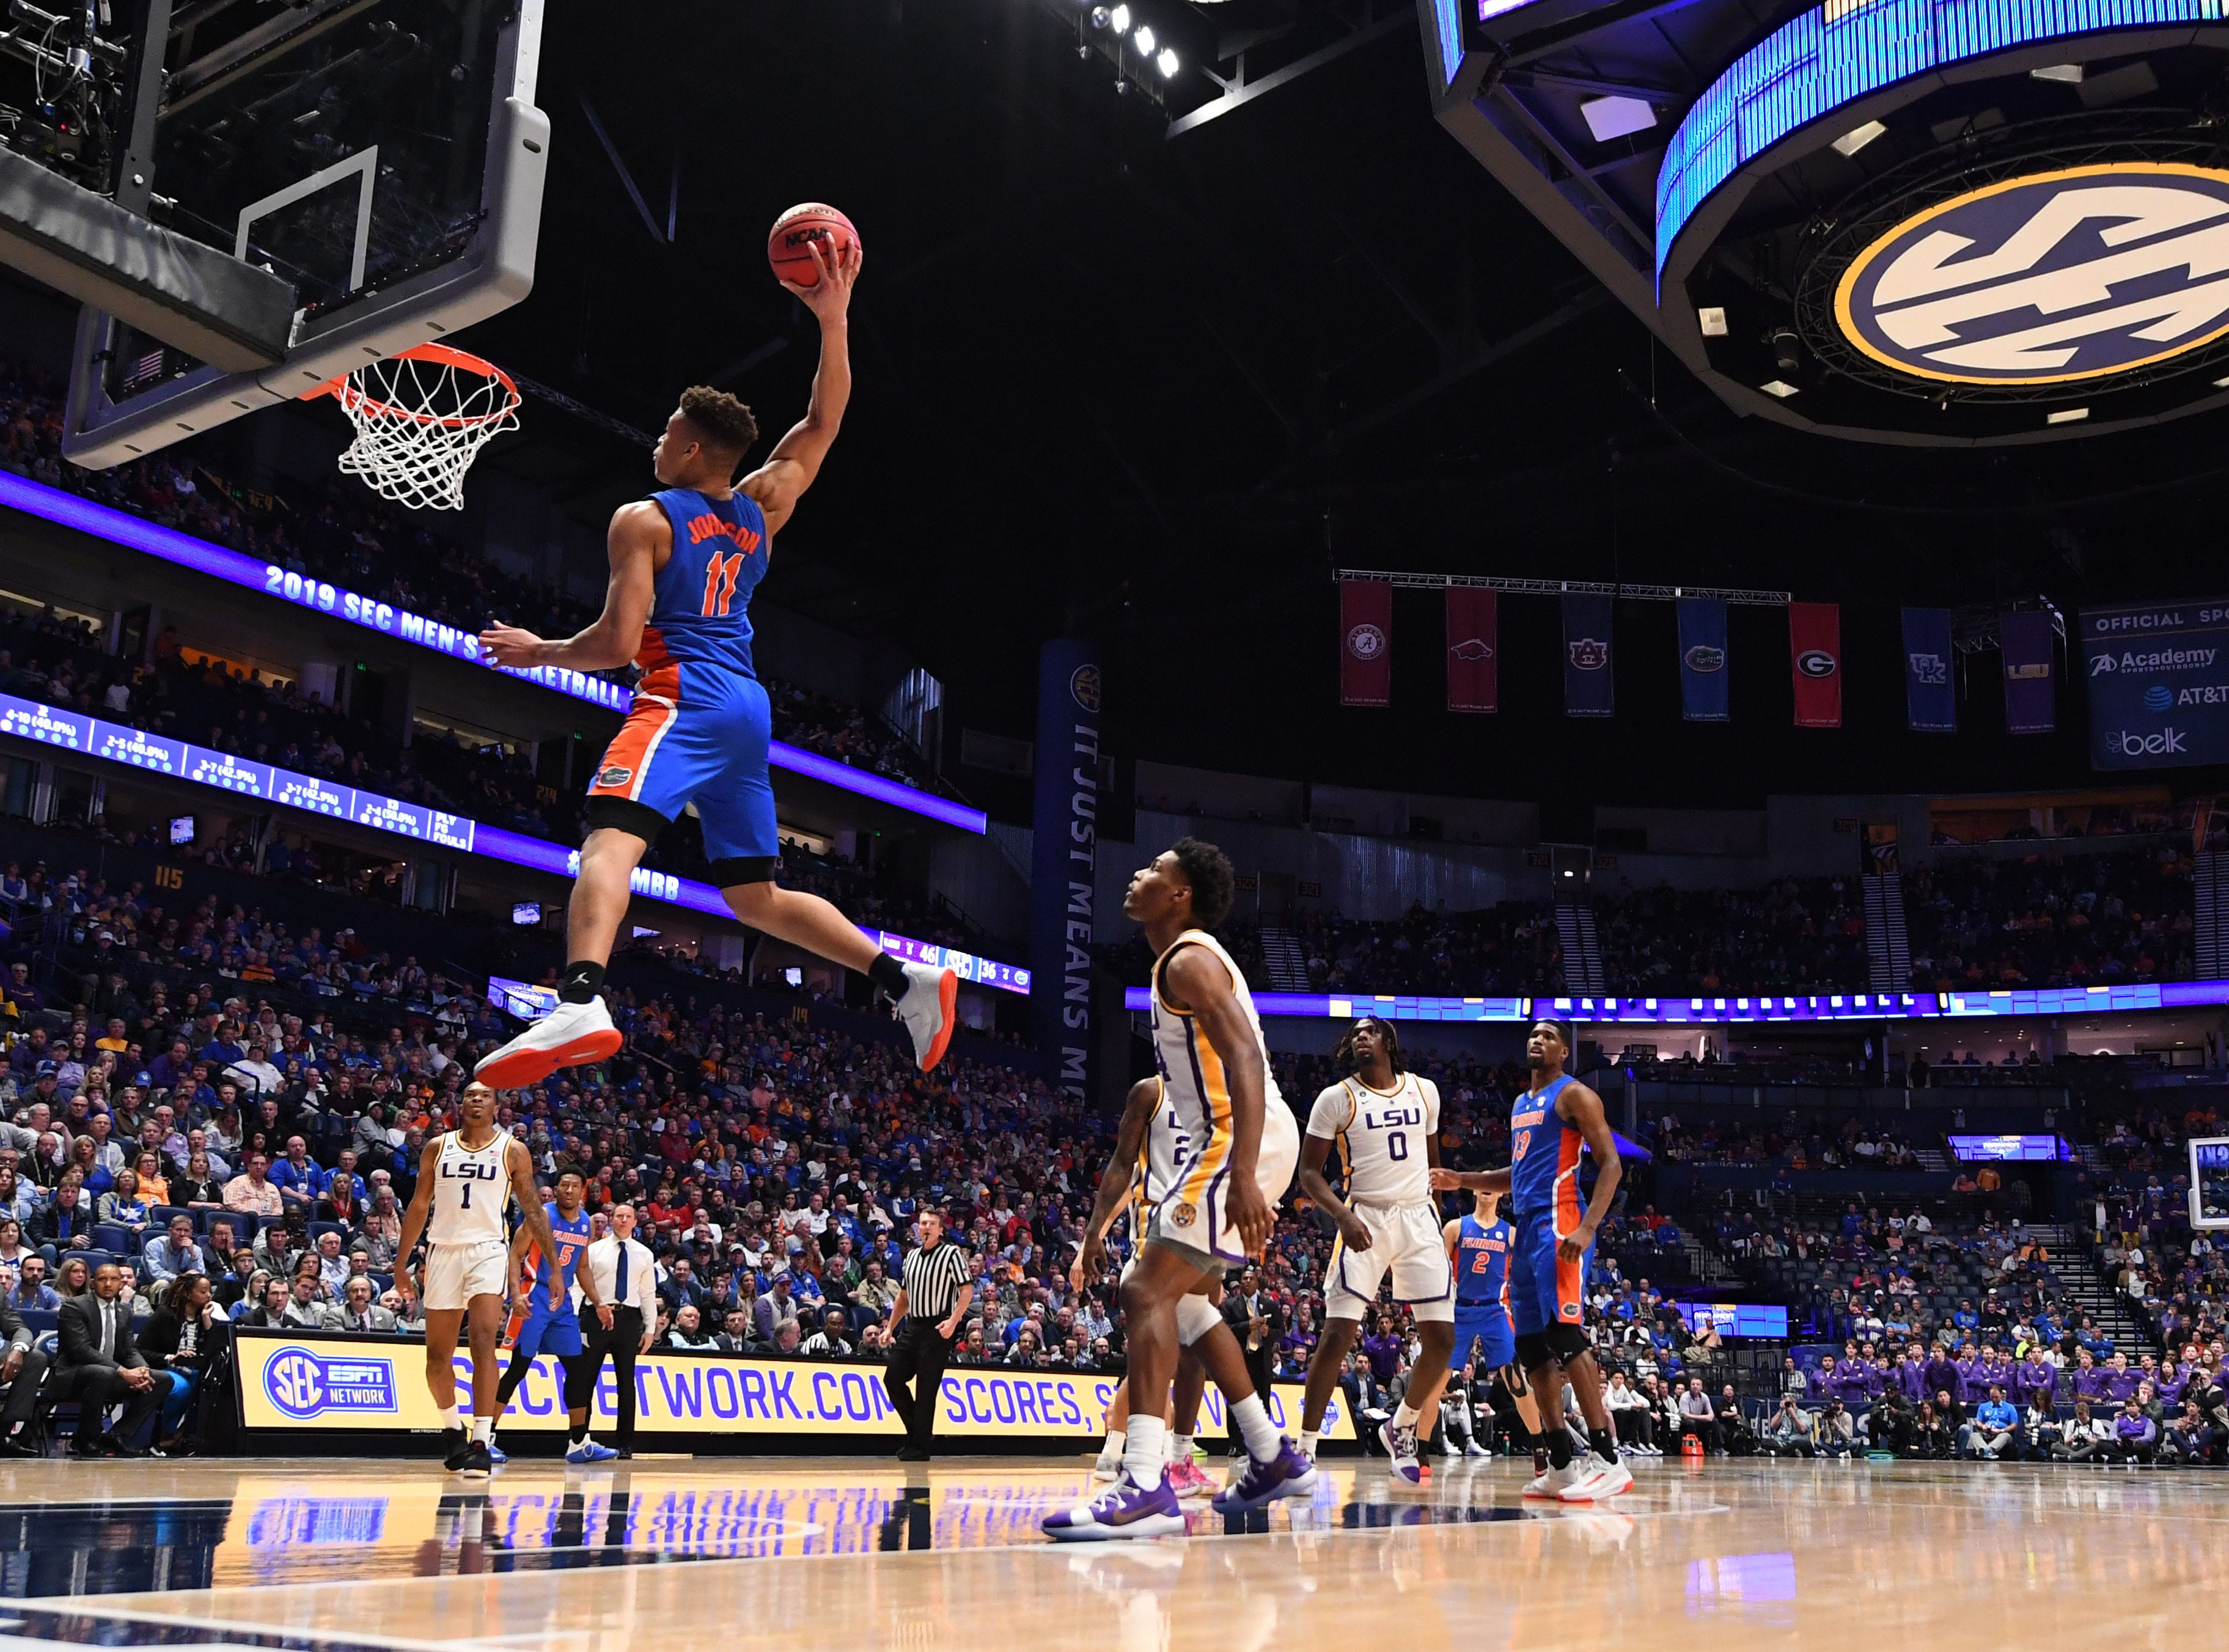 Mar 15, 2019; Nashville, TN, USA; Florida Gators forward Keyontae Johnson (11) dunks the ball against the LSU Tigers during the second half of the SEC conference tournament at Bridgestone Arena. Mandatory Credit: Christopher Hanewinckel-USA TODAY Sports